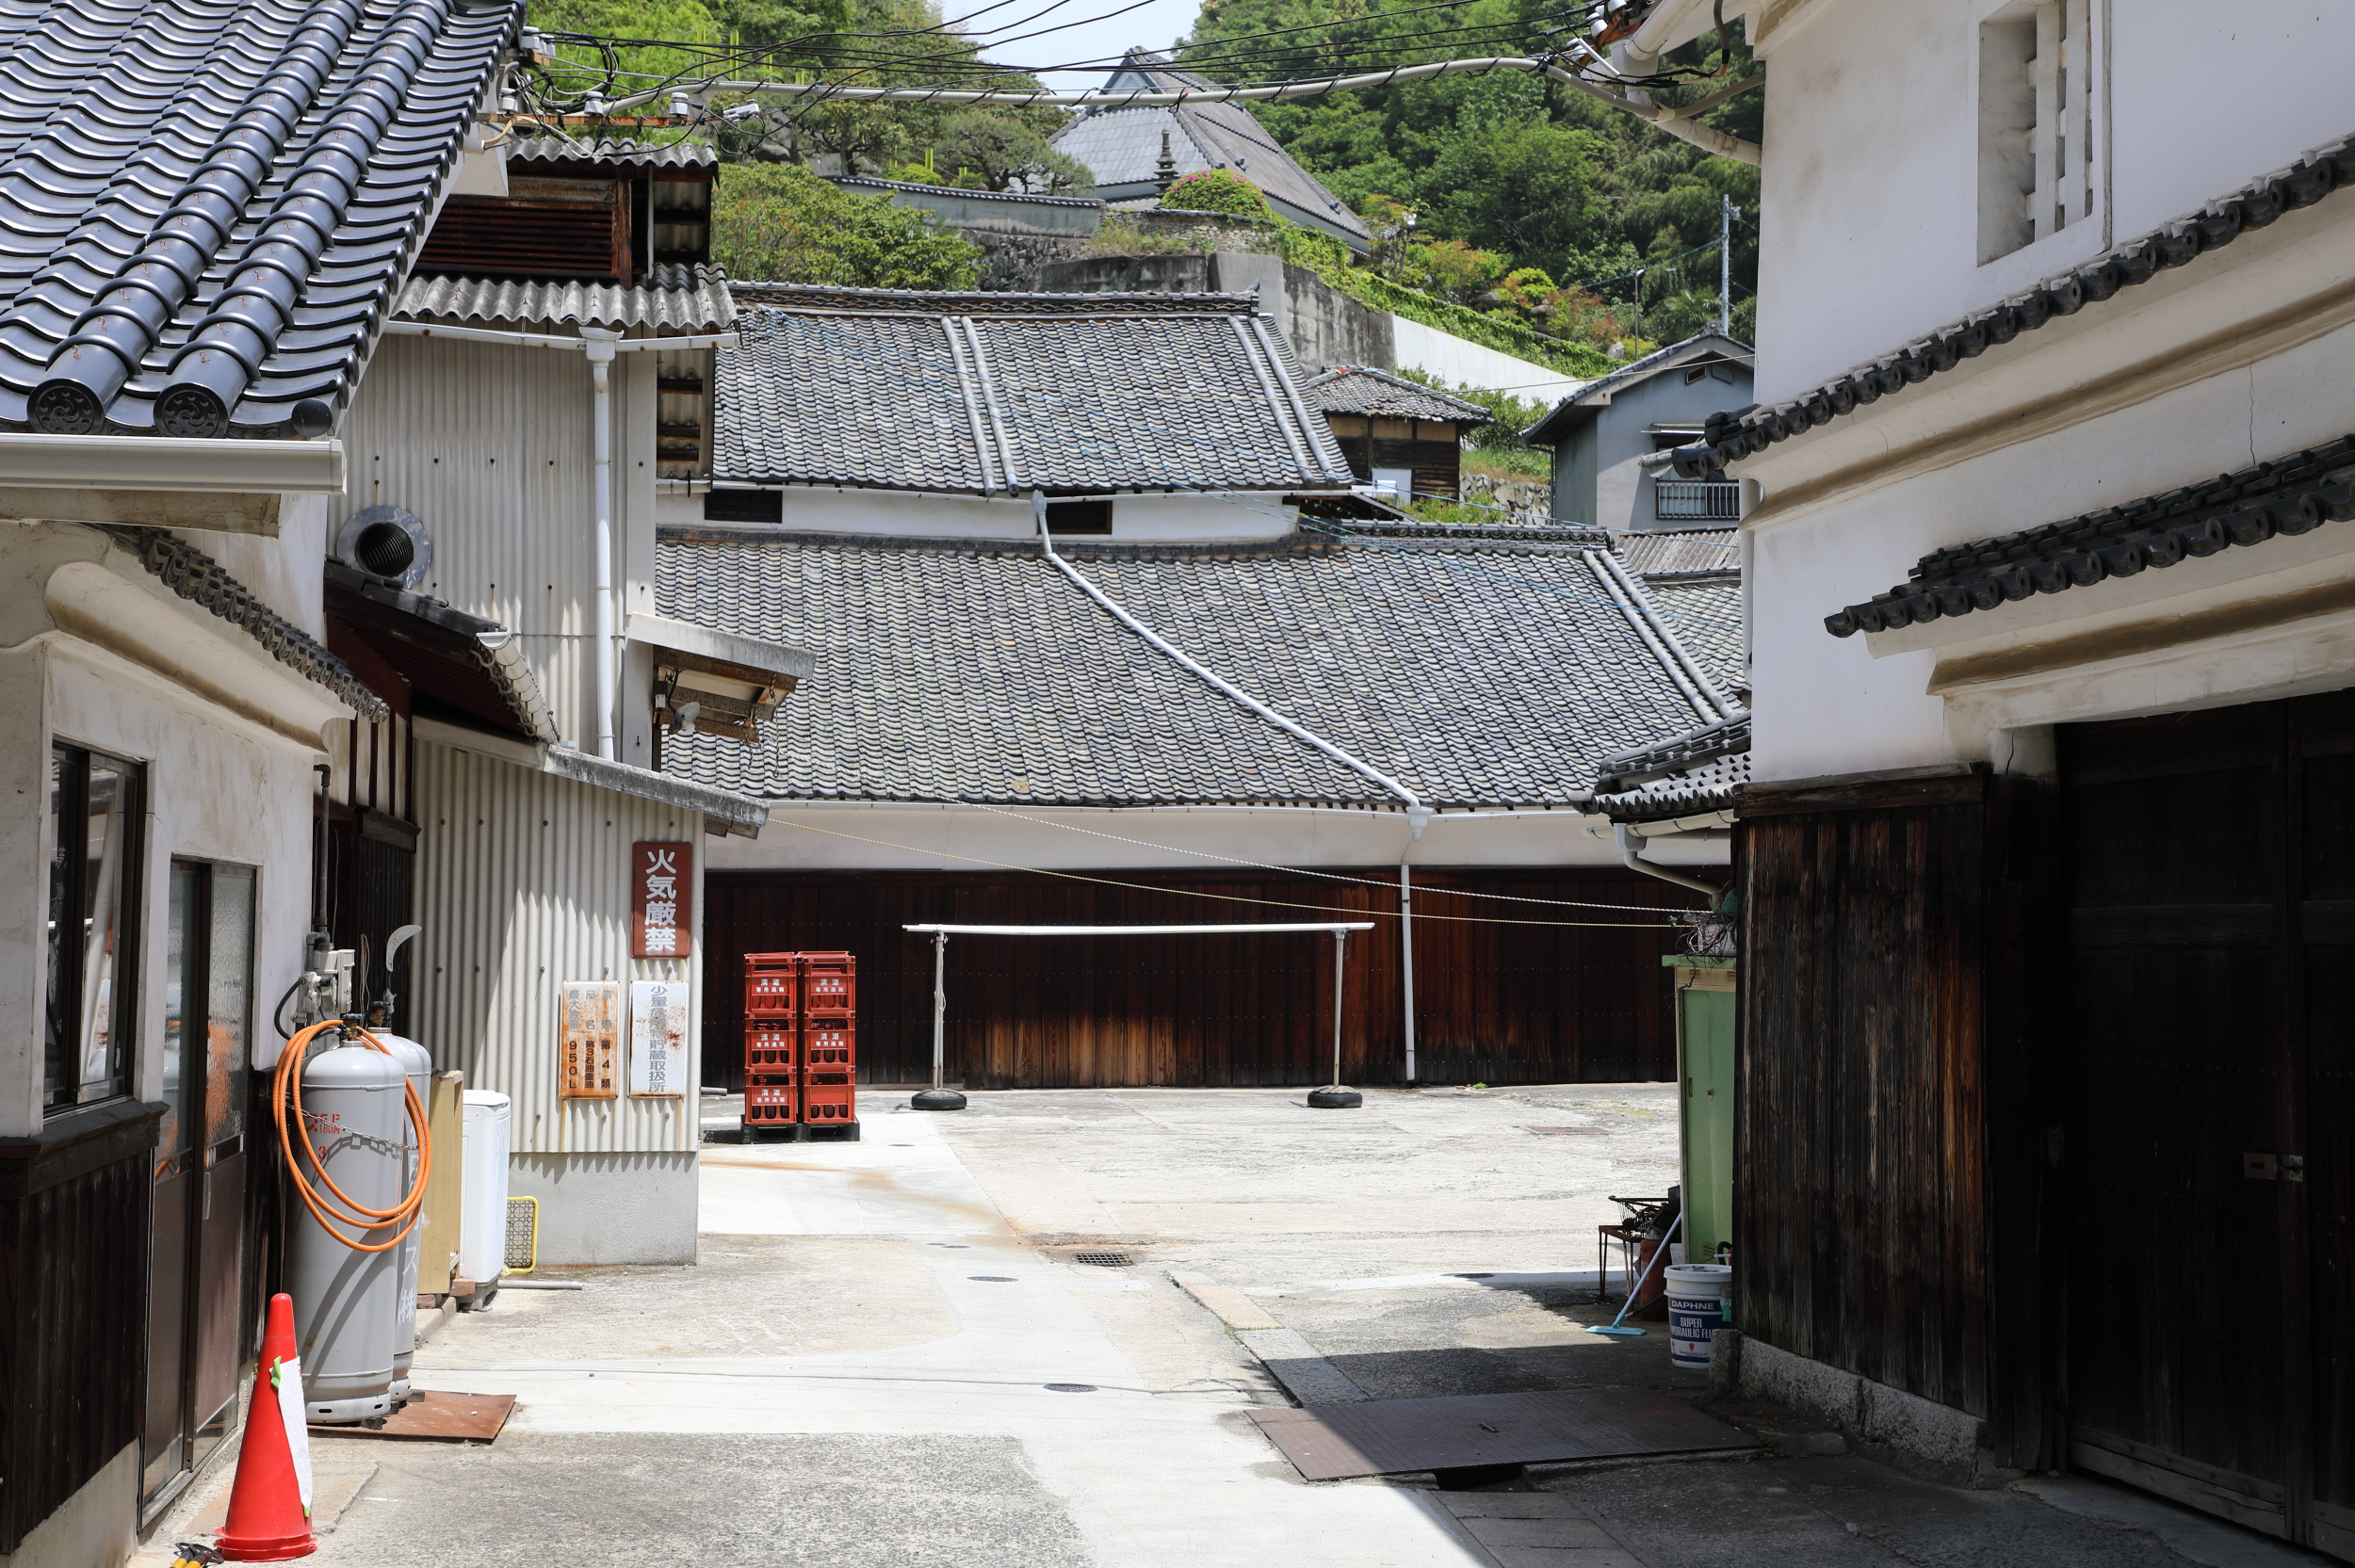 From the courtyard of Imada Shuzo, Senzaburo Miura's former home seems to be part of the brewery complex.